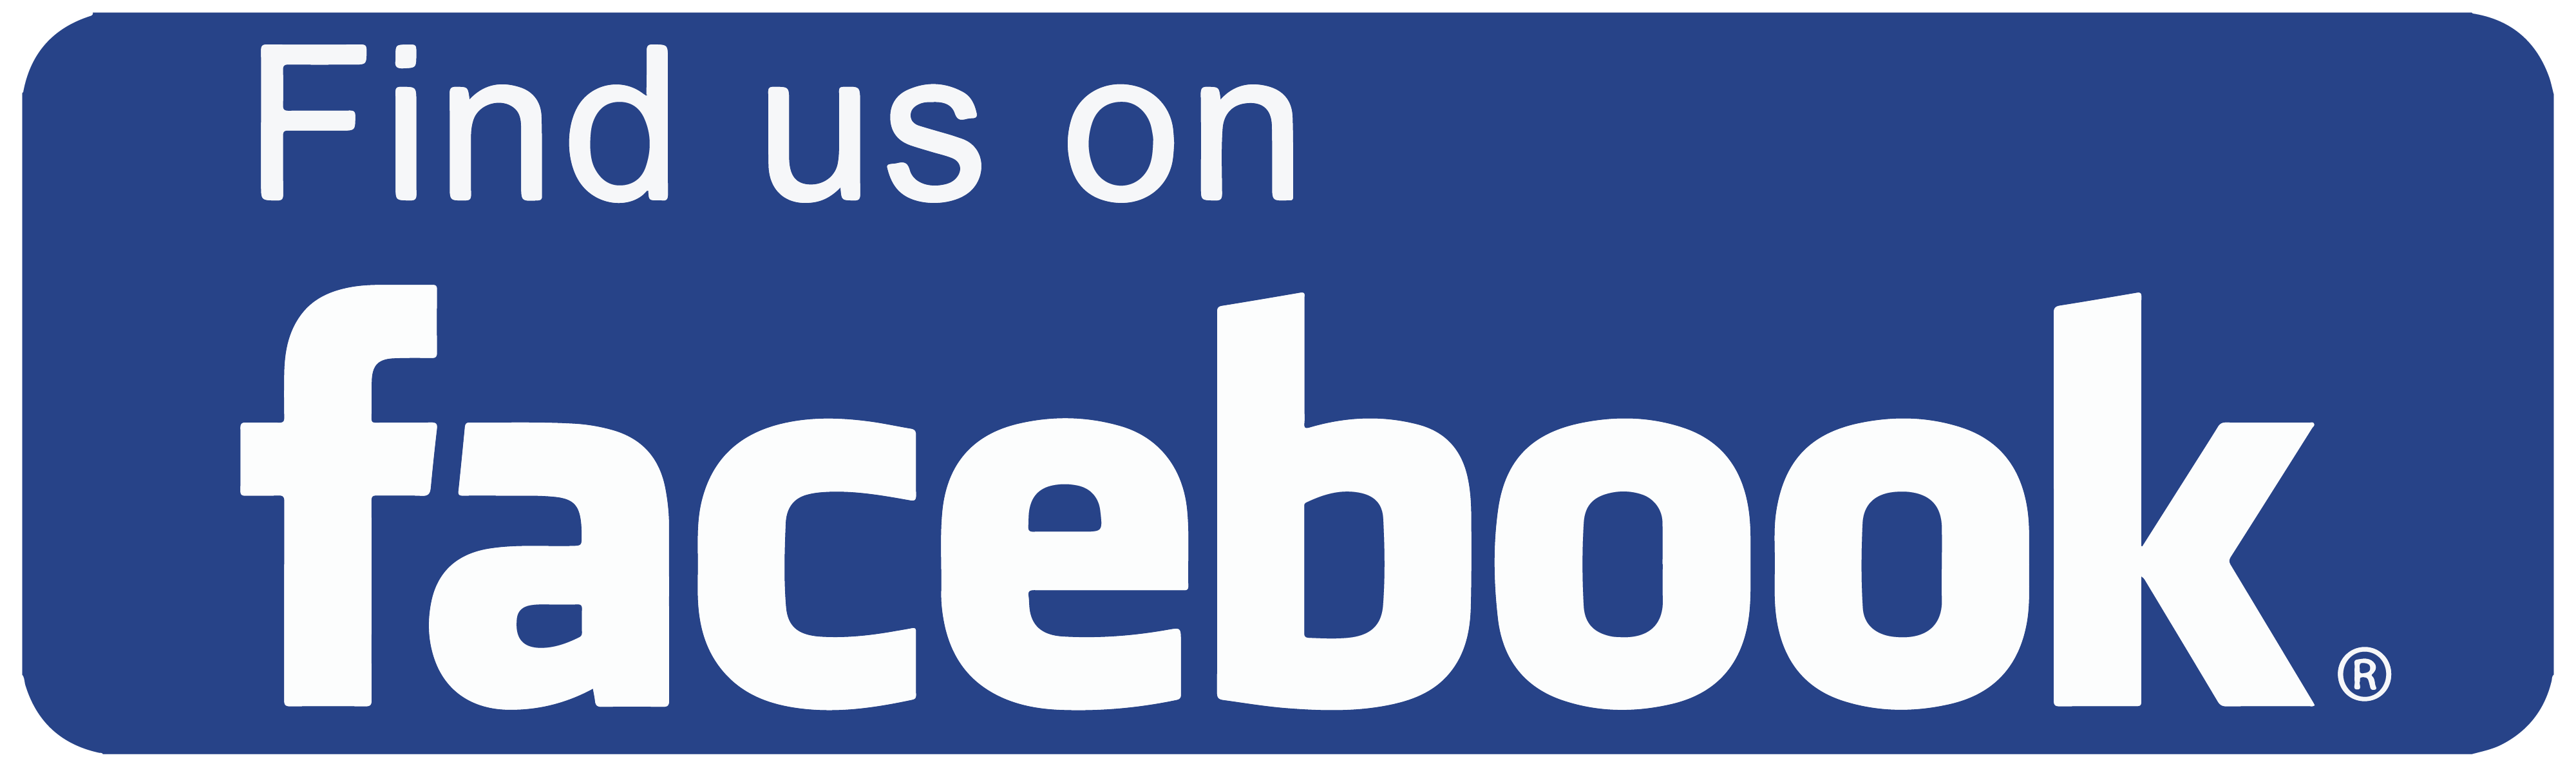 find us on facebook 01